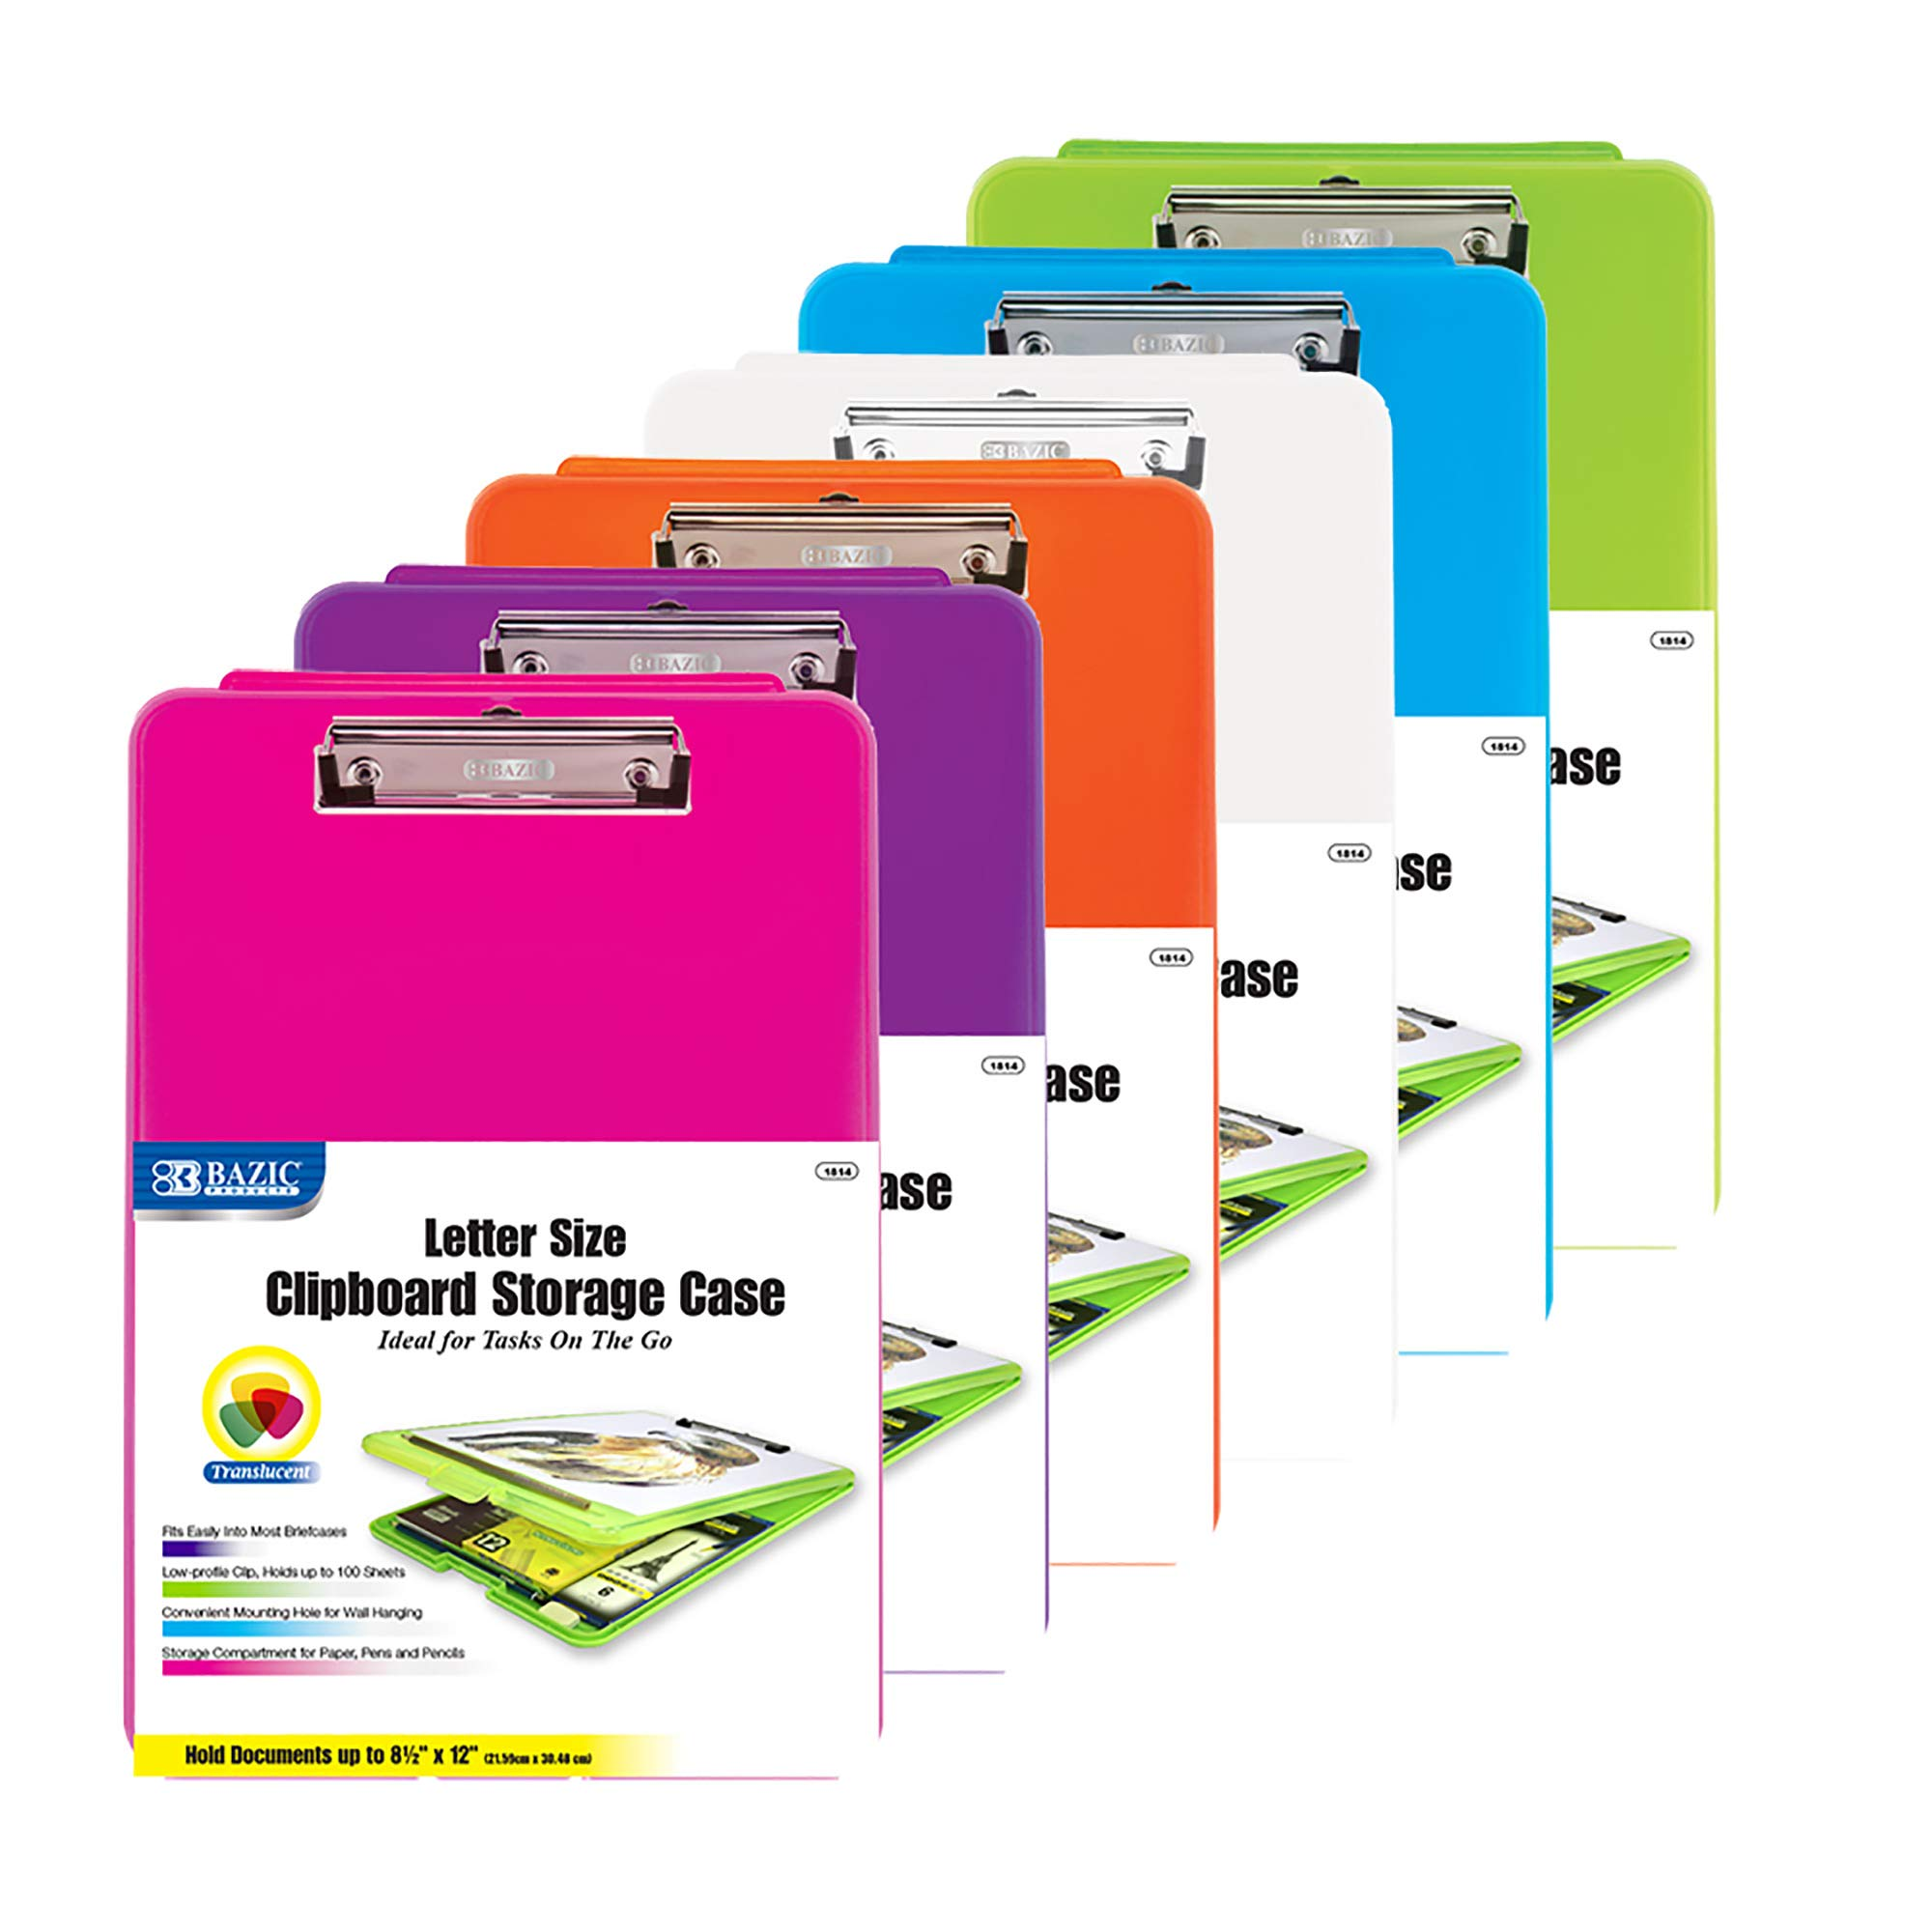 BAZIC Translucent Clipboard Paperboard Storage Case, Assorted 6 Color A4 Letter Size Plastic Briefcases Box Open Foldable, Business Travel School Teacher Artist Student College (Set of 6)